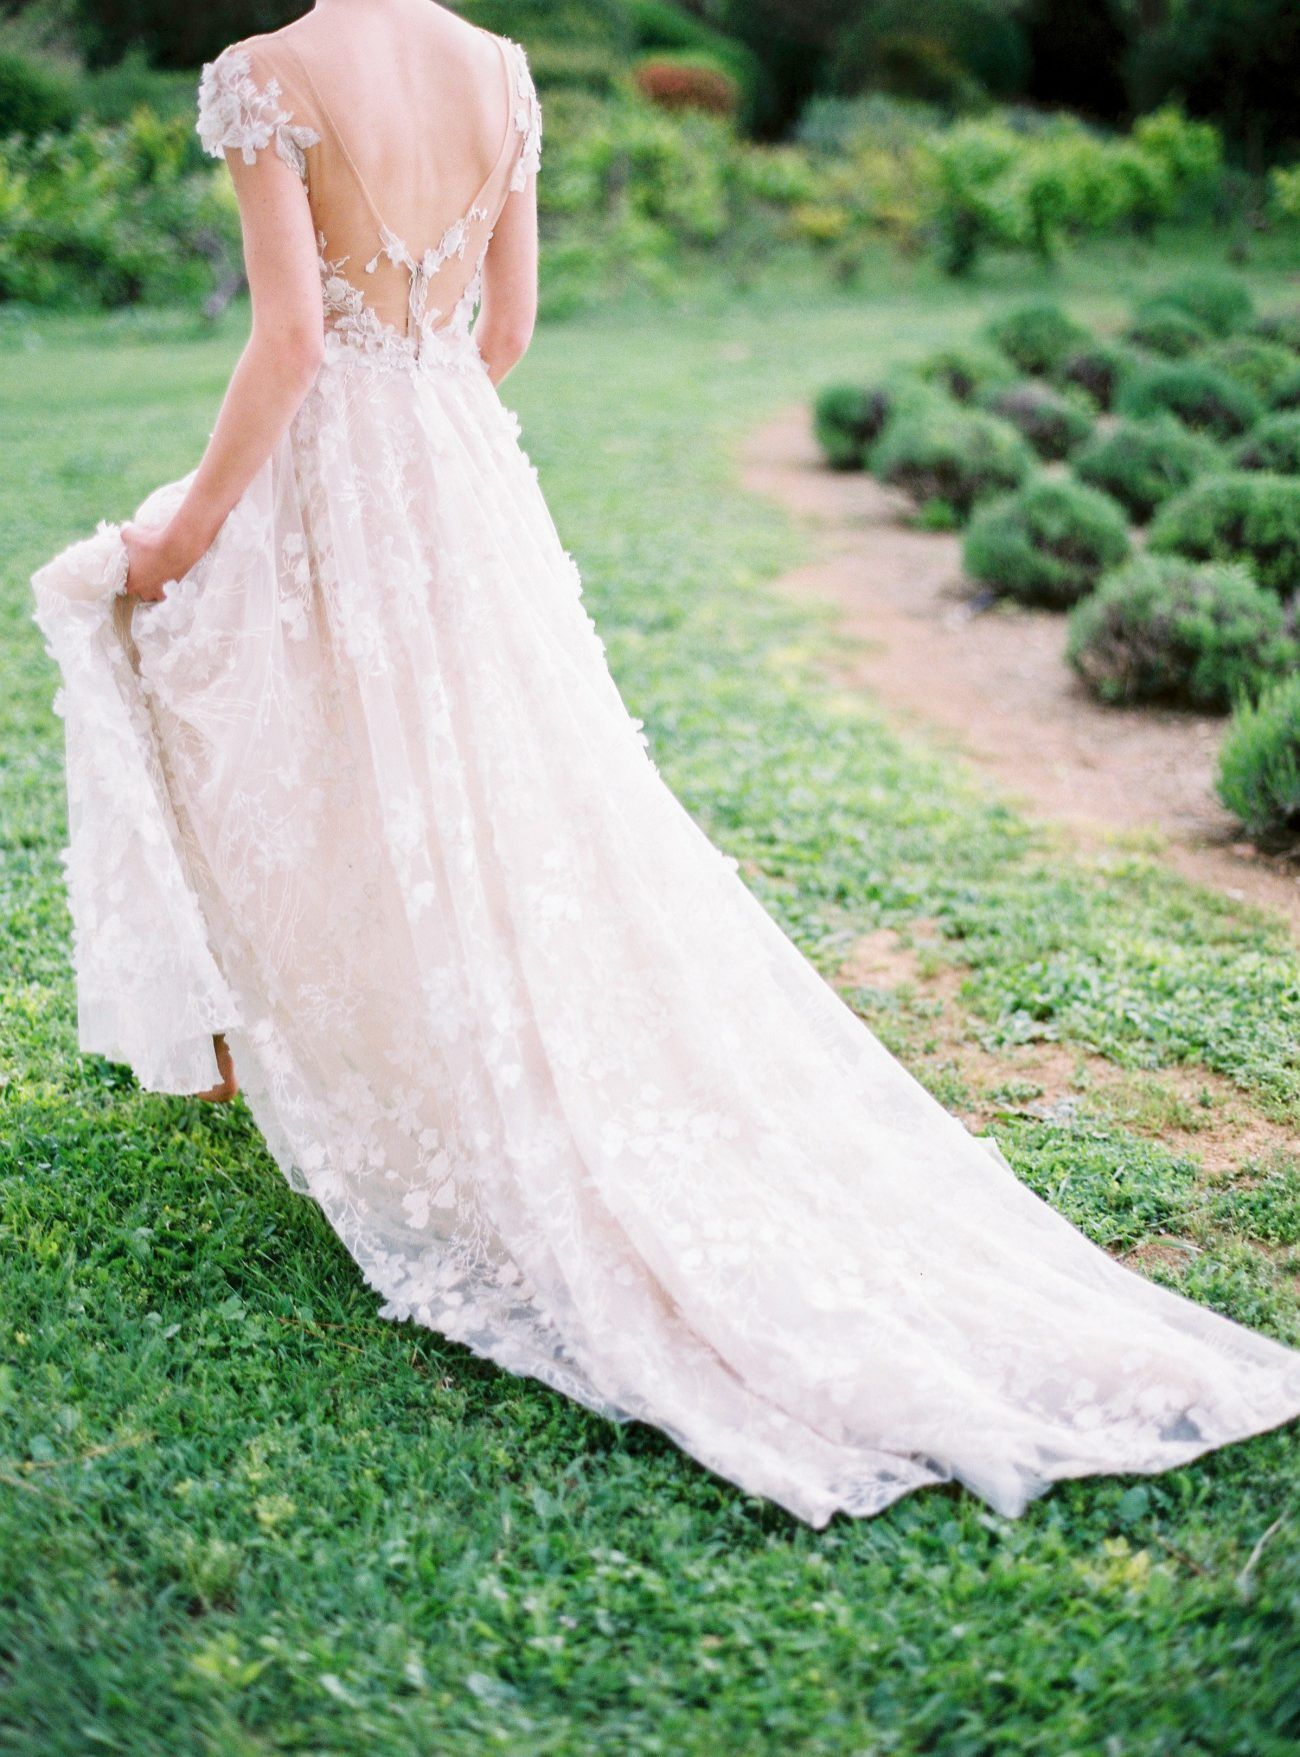 AliceAhnPhotography-PBridal-146